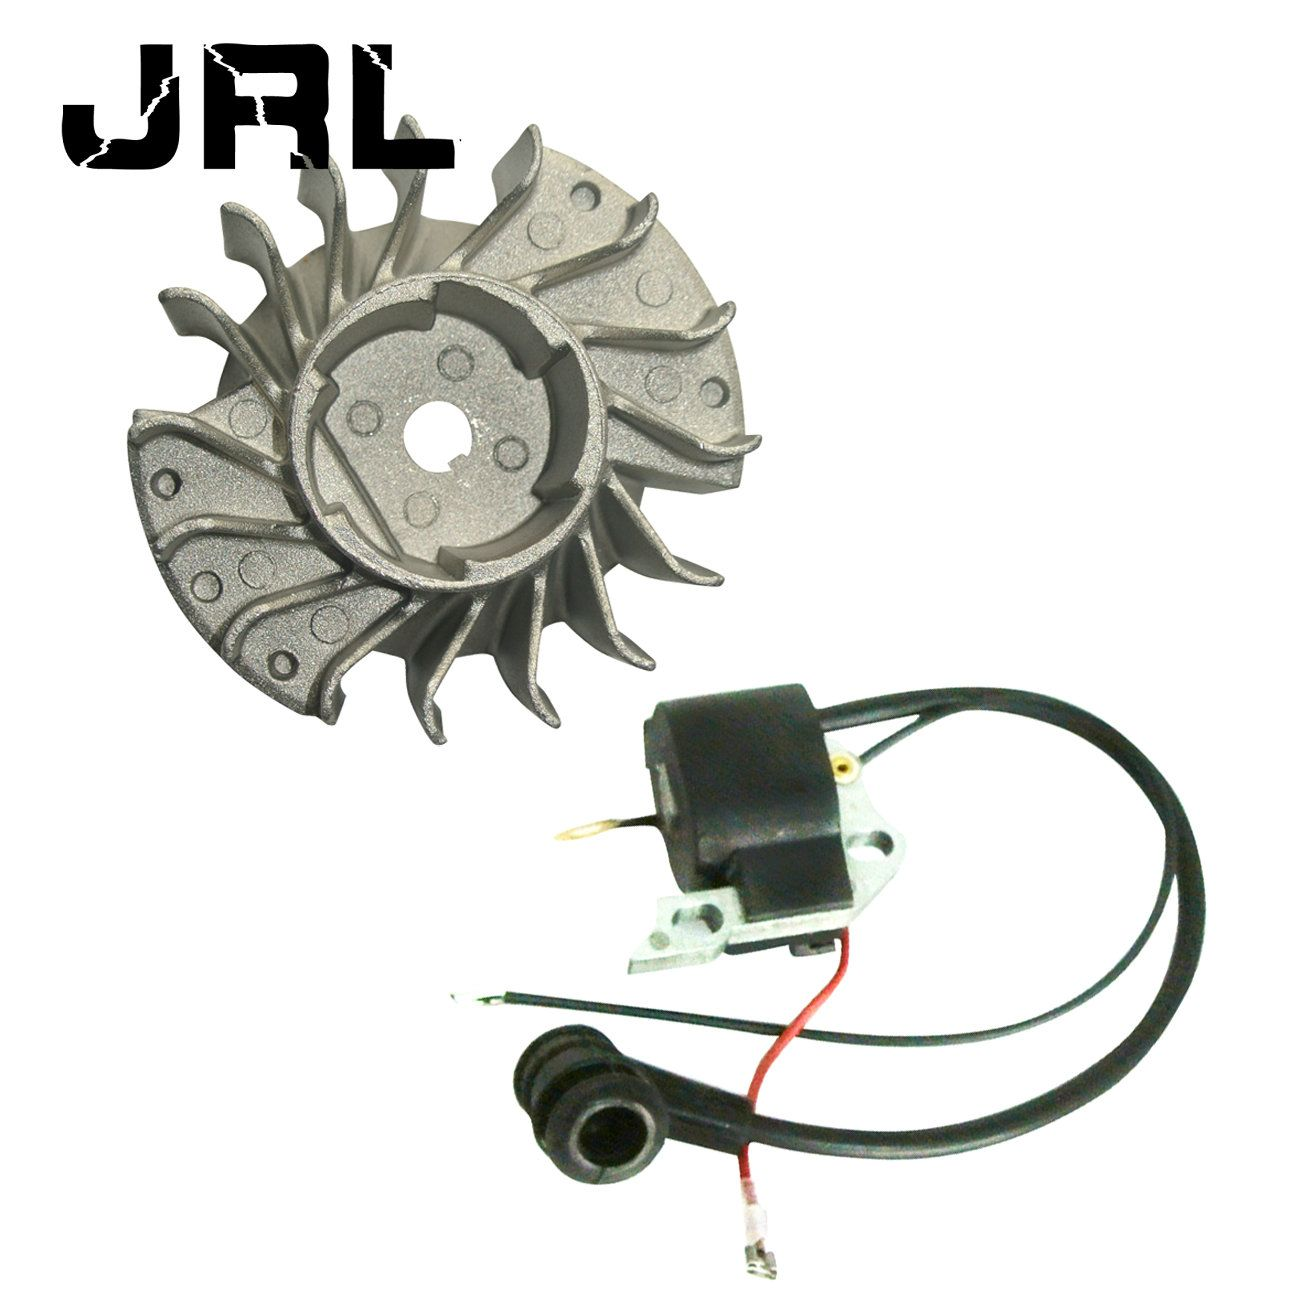 Flywheel Ignition Coil Fit Stihl 025 Ms250 Chainsaw Engine Motor Ignition Coil Stihl Flywheel